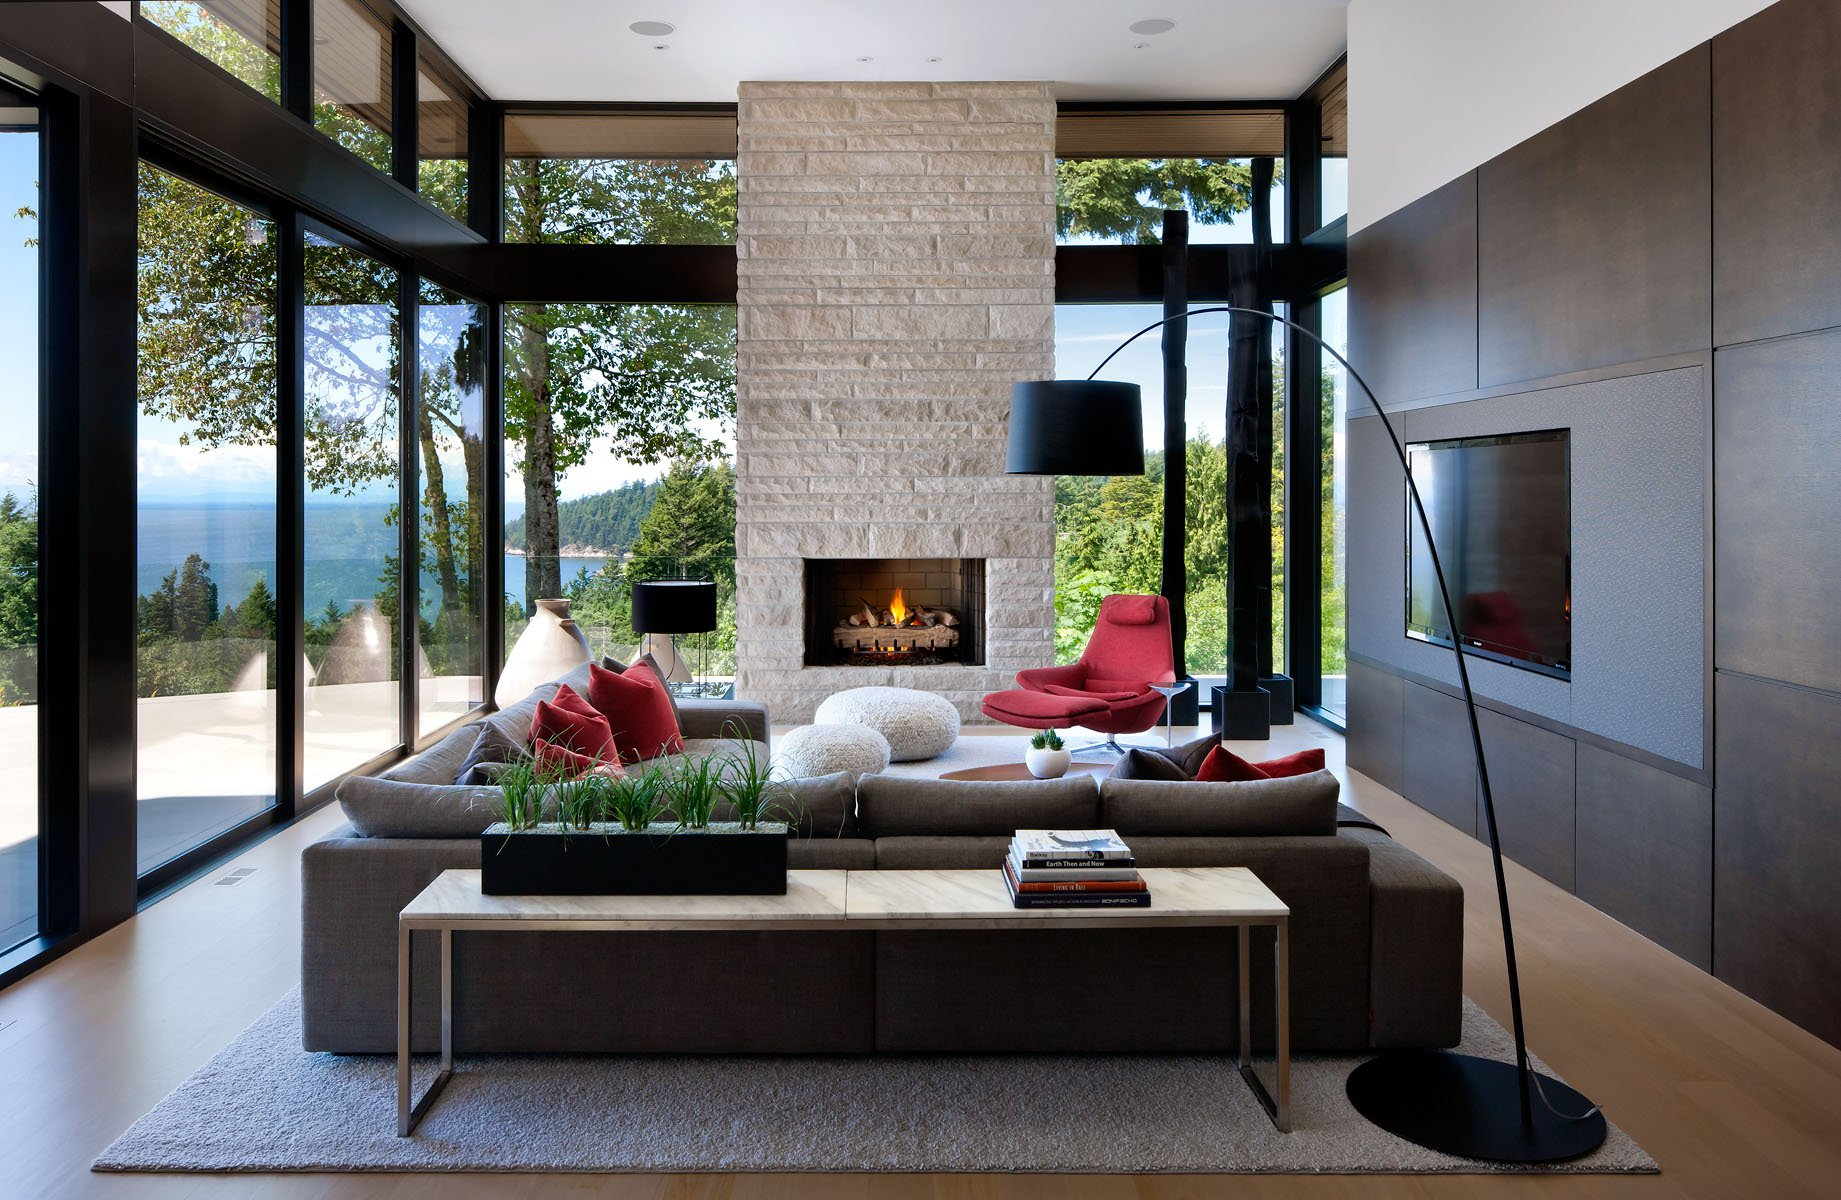 Burkehill Residence By Craig Chevalier And Raven Inside Interior Design Caandesign Architecture And Home Design Blog